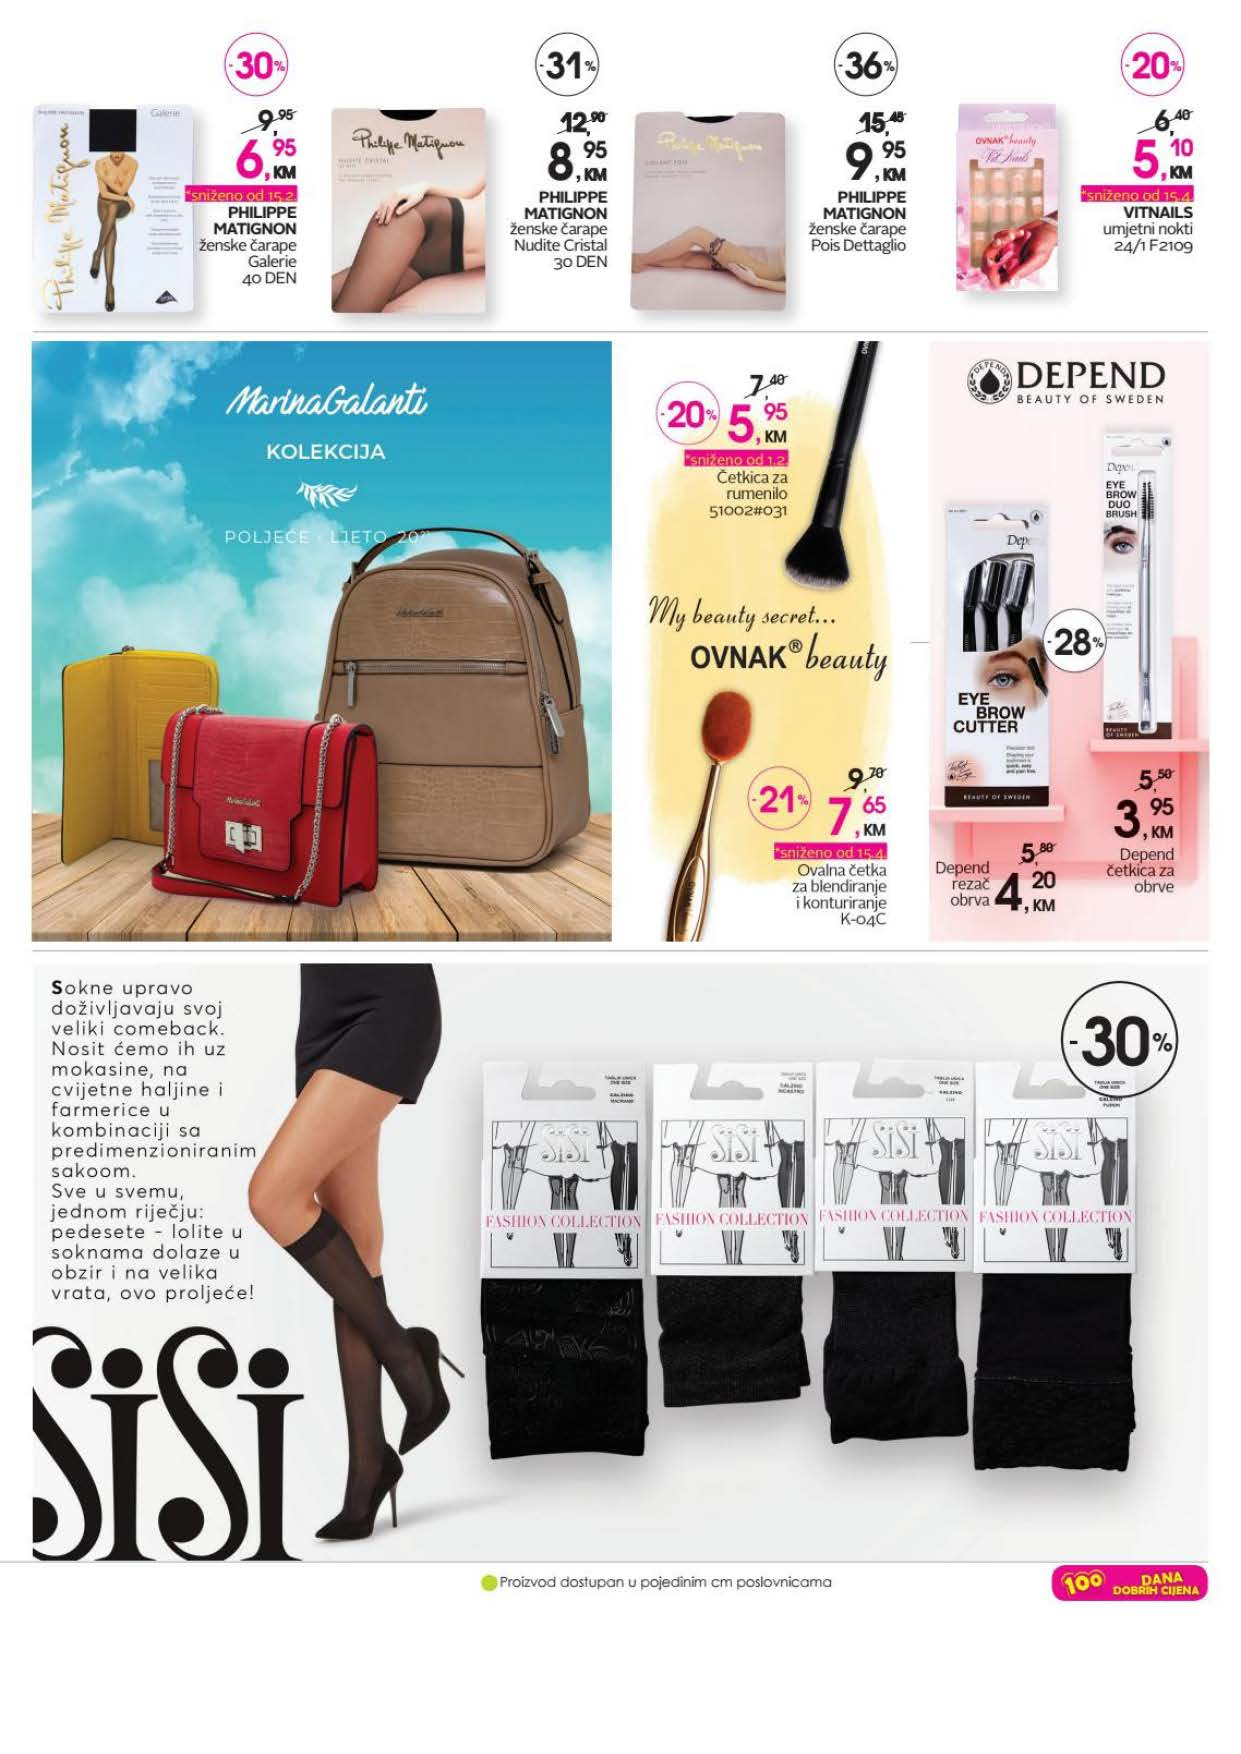 COSMETIC MARKET CM Katalog APRIL 2021 16.04.2021. 30.04.2021. Page 19